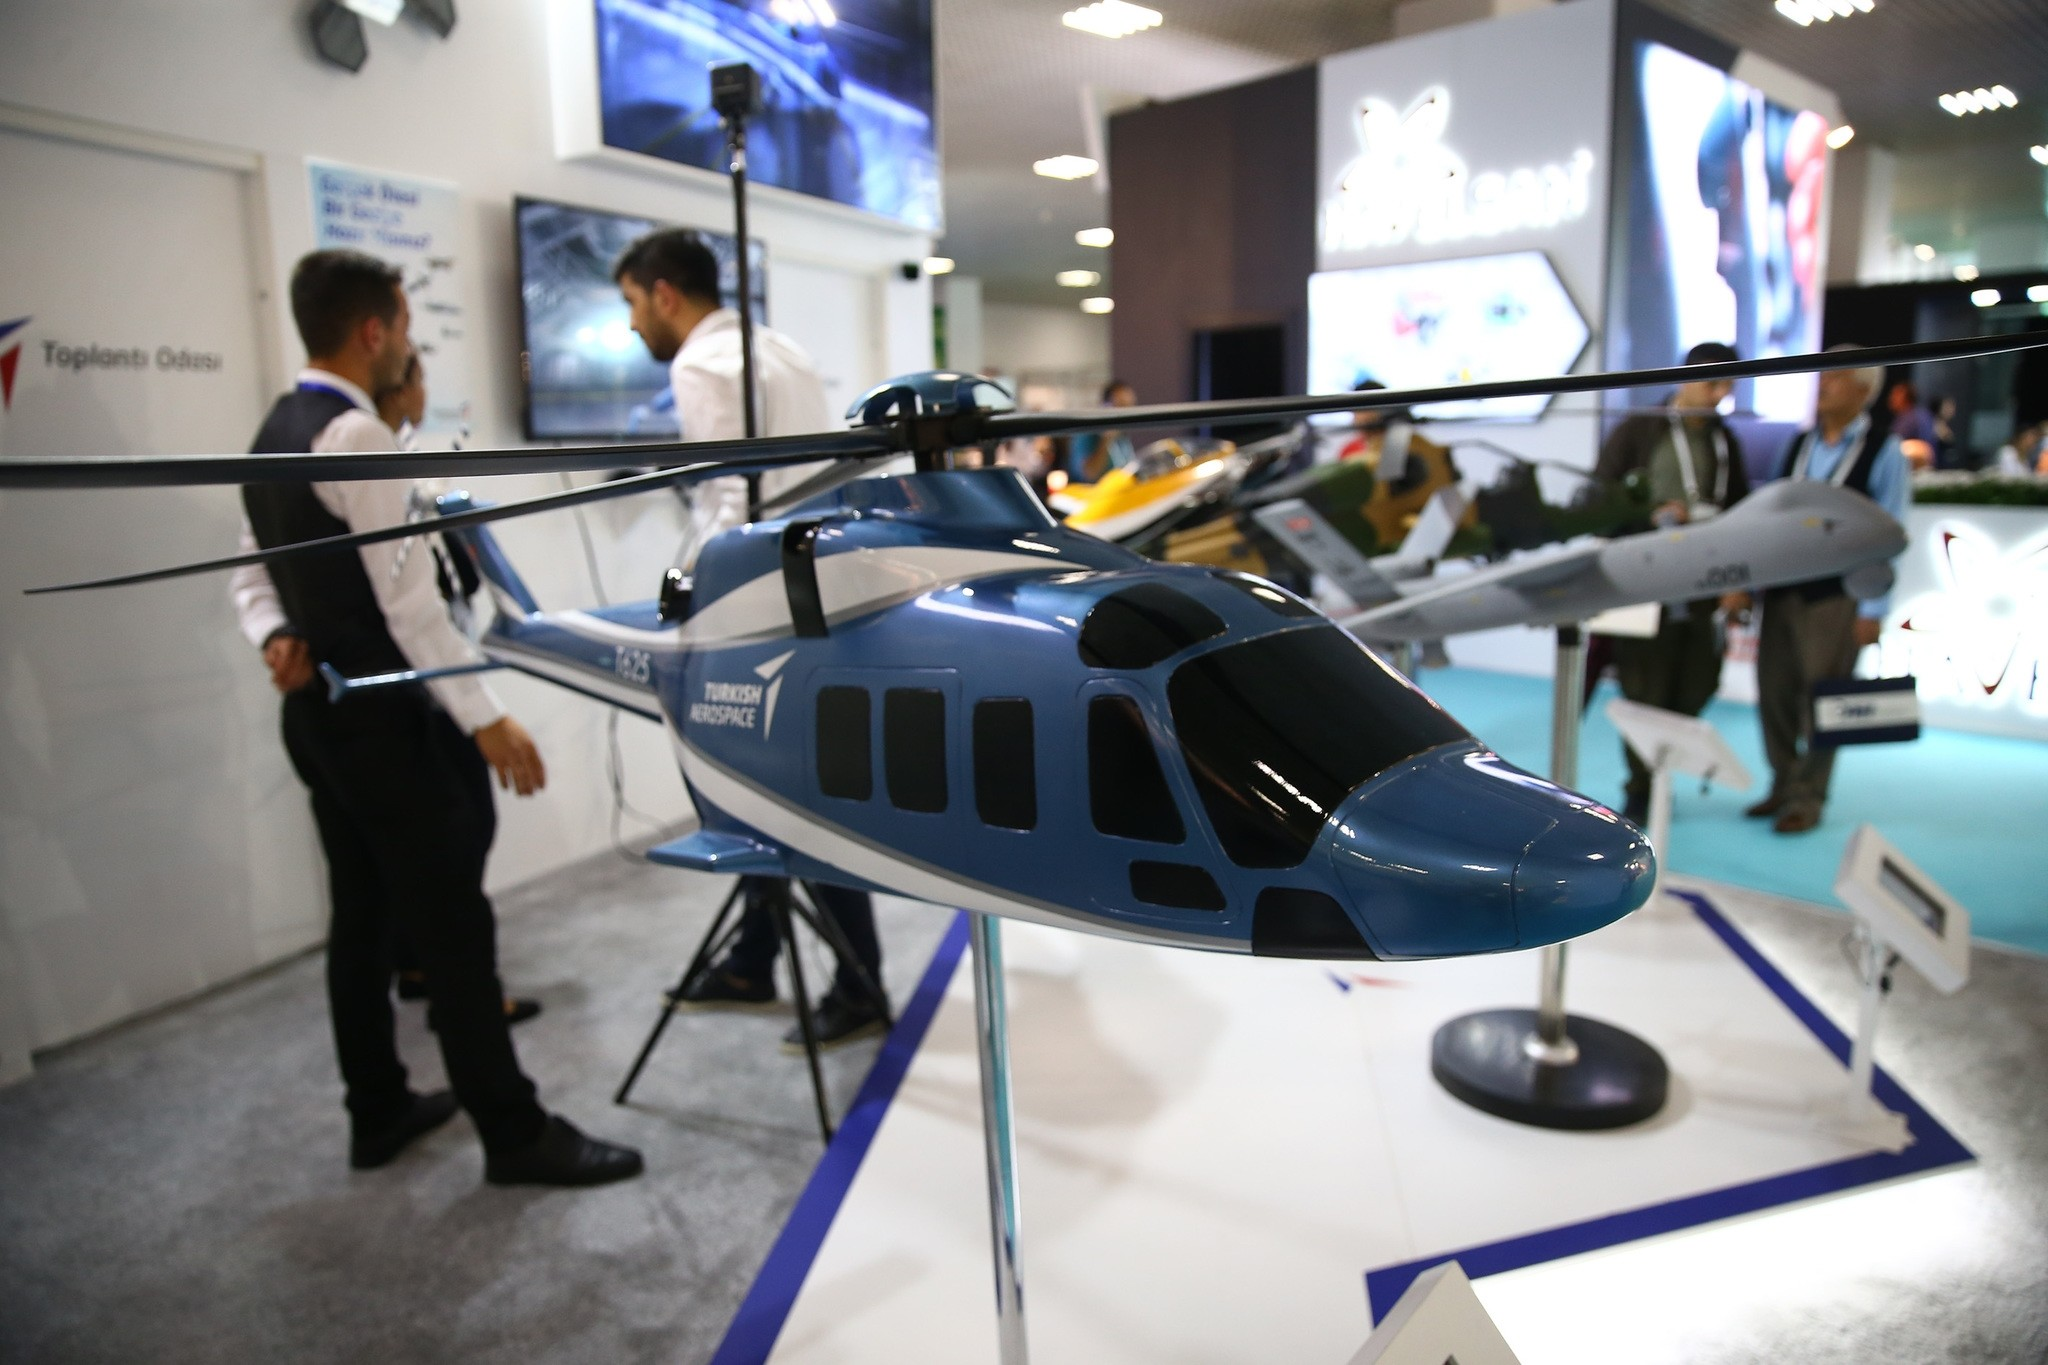 Local and foreign defense companies as well as defense officials from abroad participated in SAHA EXPO 2018 which ran from Sept. 13 to Sept. 15 in Istanbul.